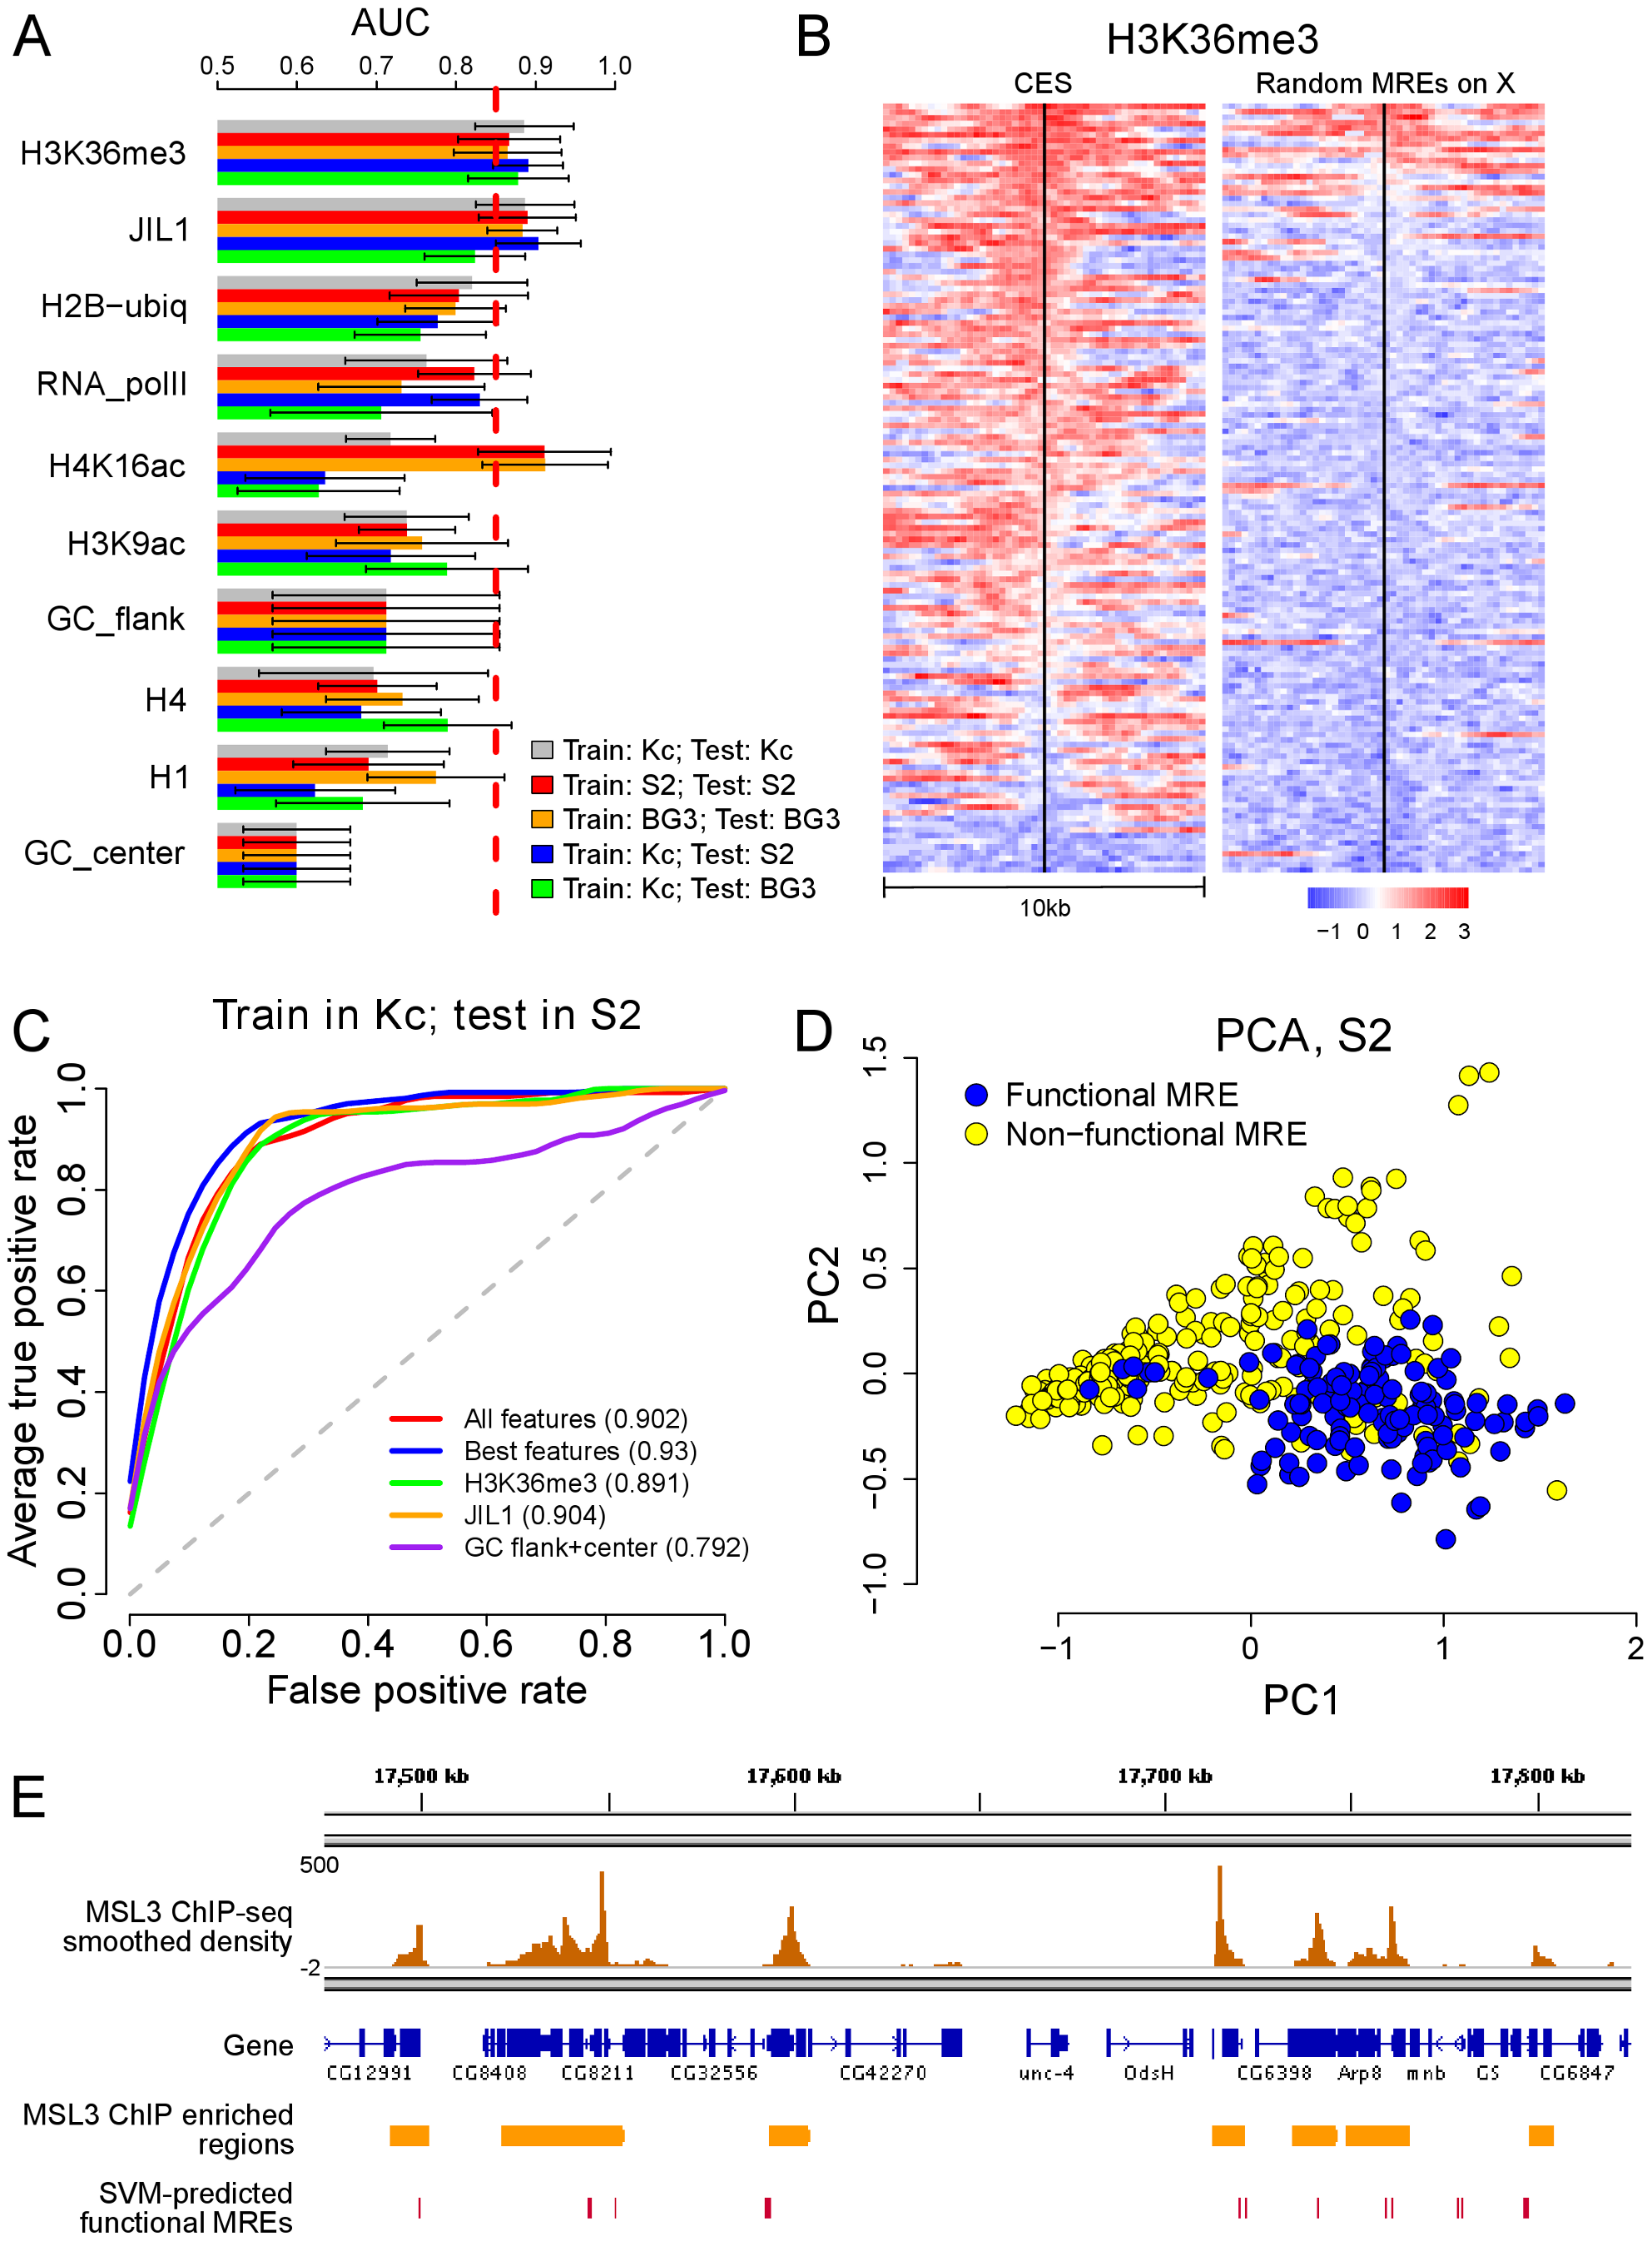 Chromatin context is predictive of functional MREs.